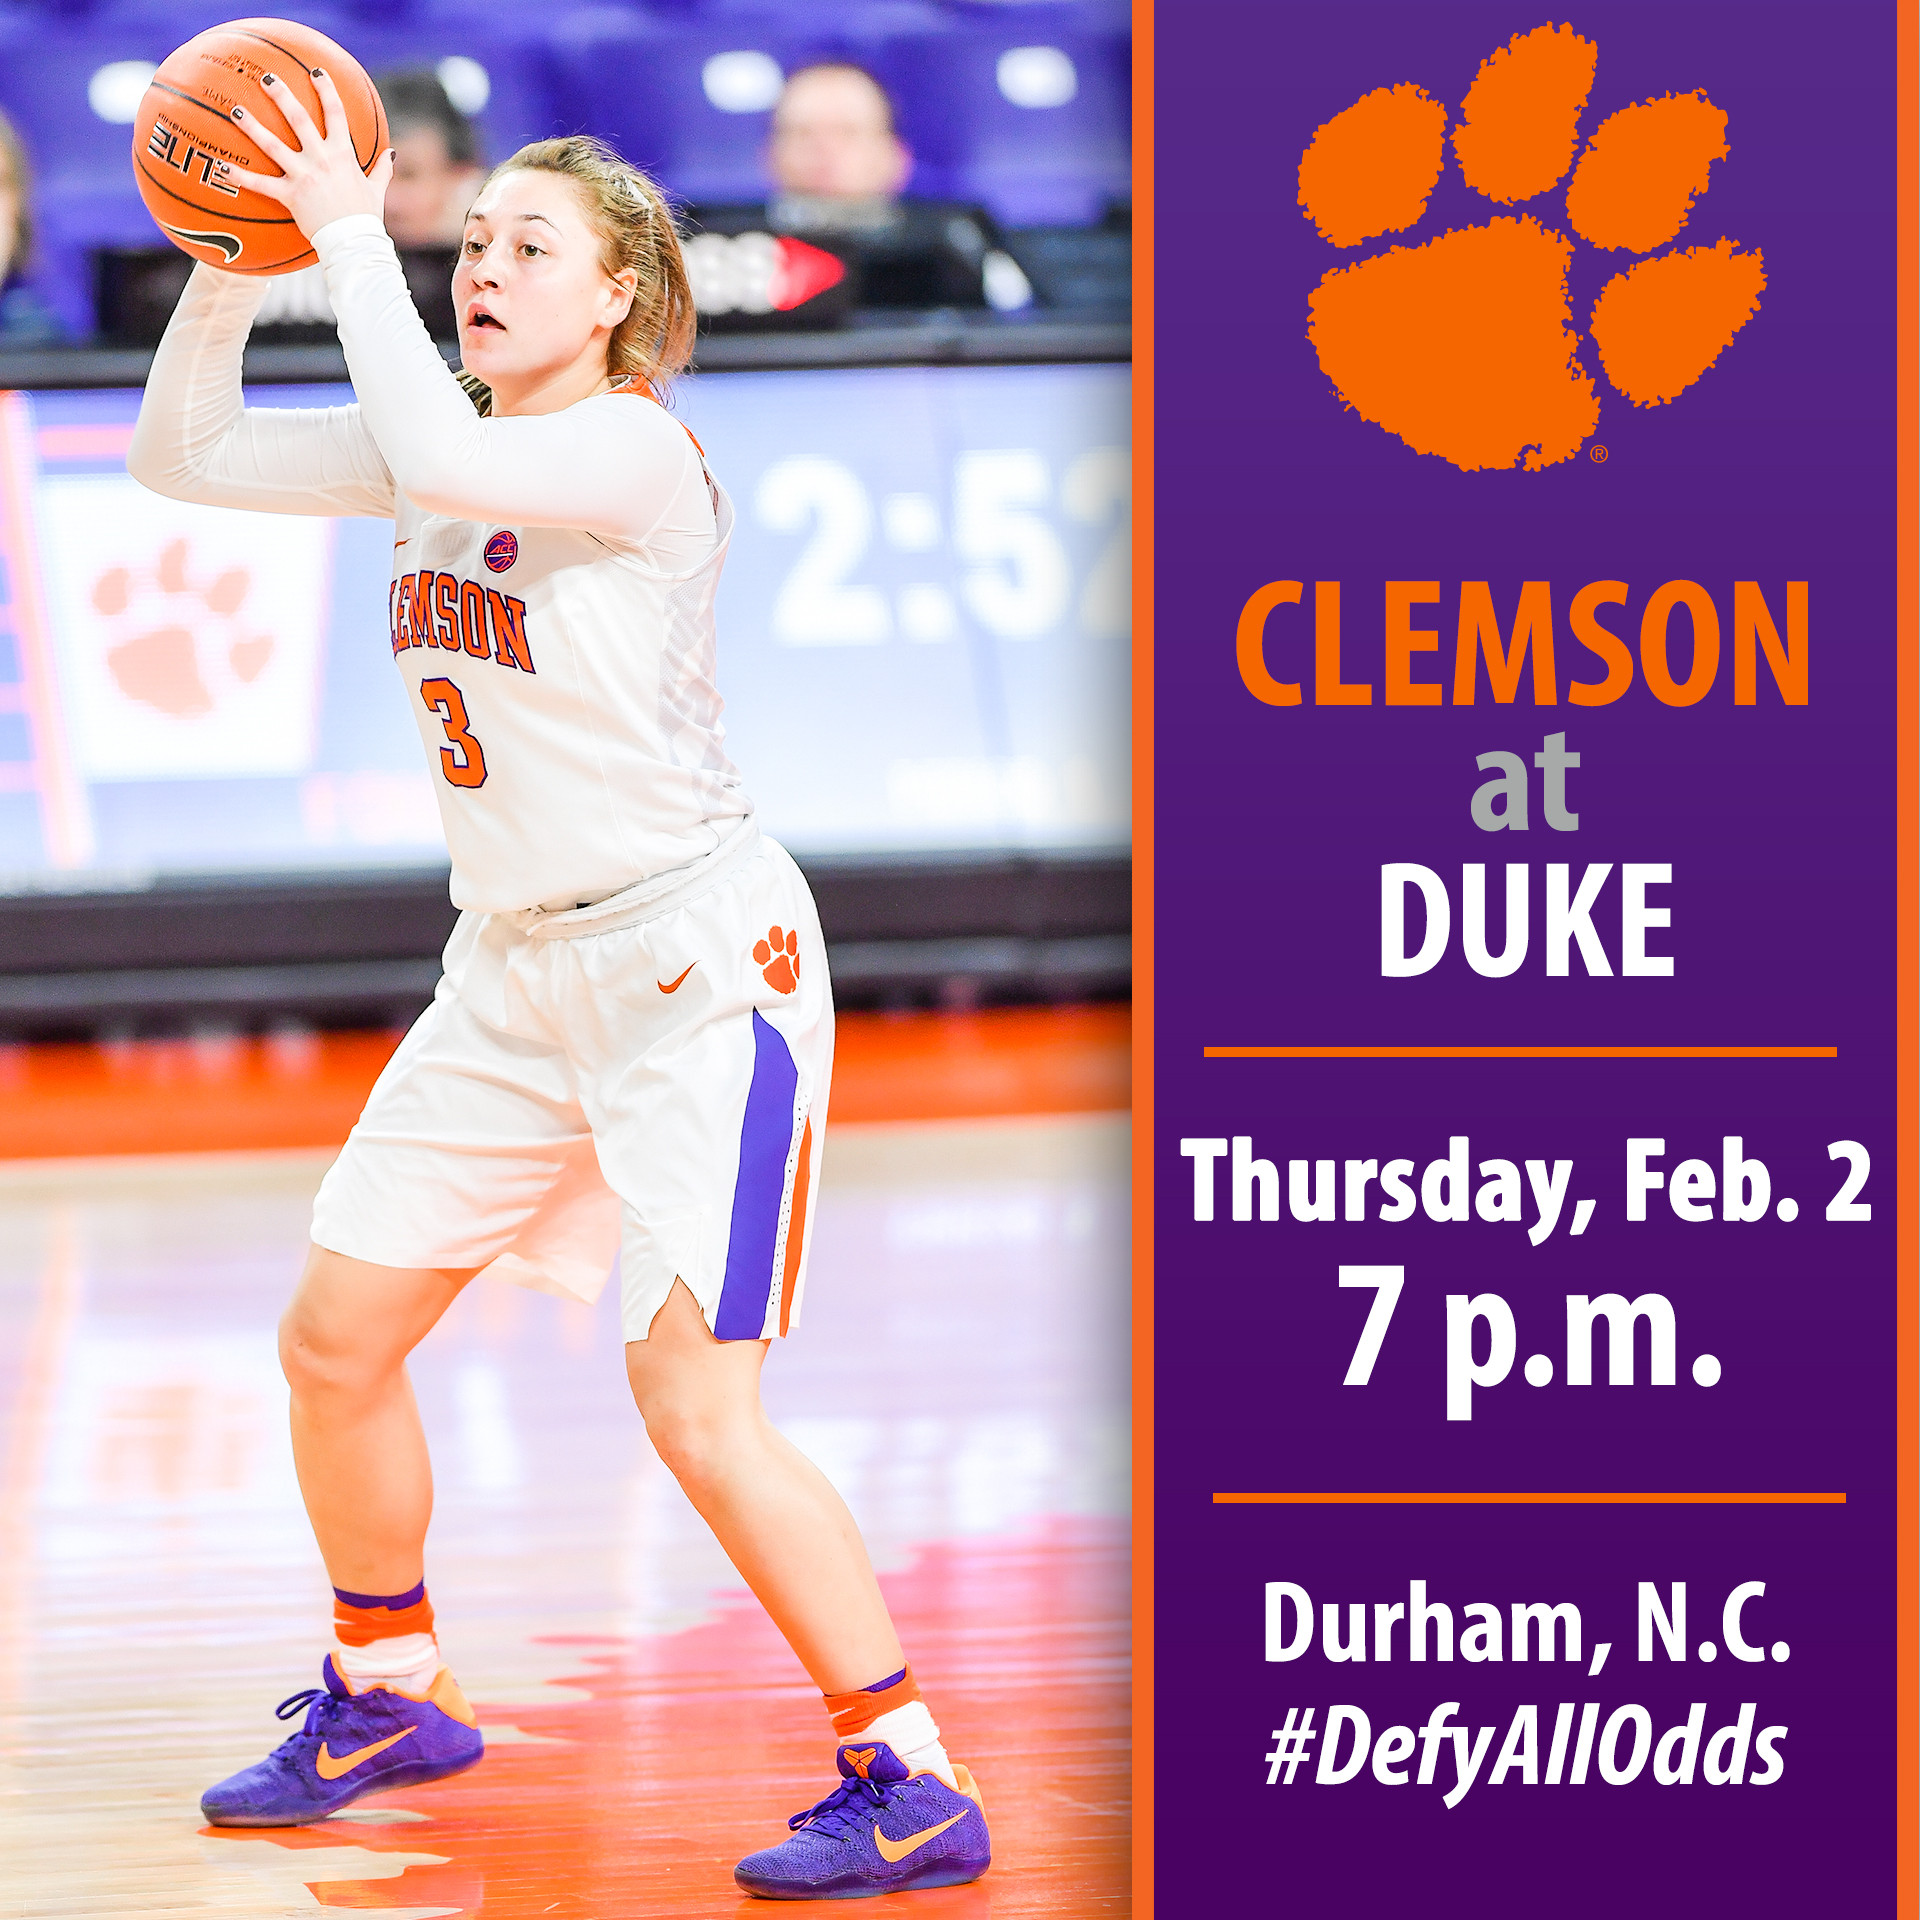 Tigers Travel to Durham to Face No. 15/15 Duke Thursday